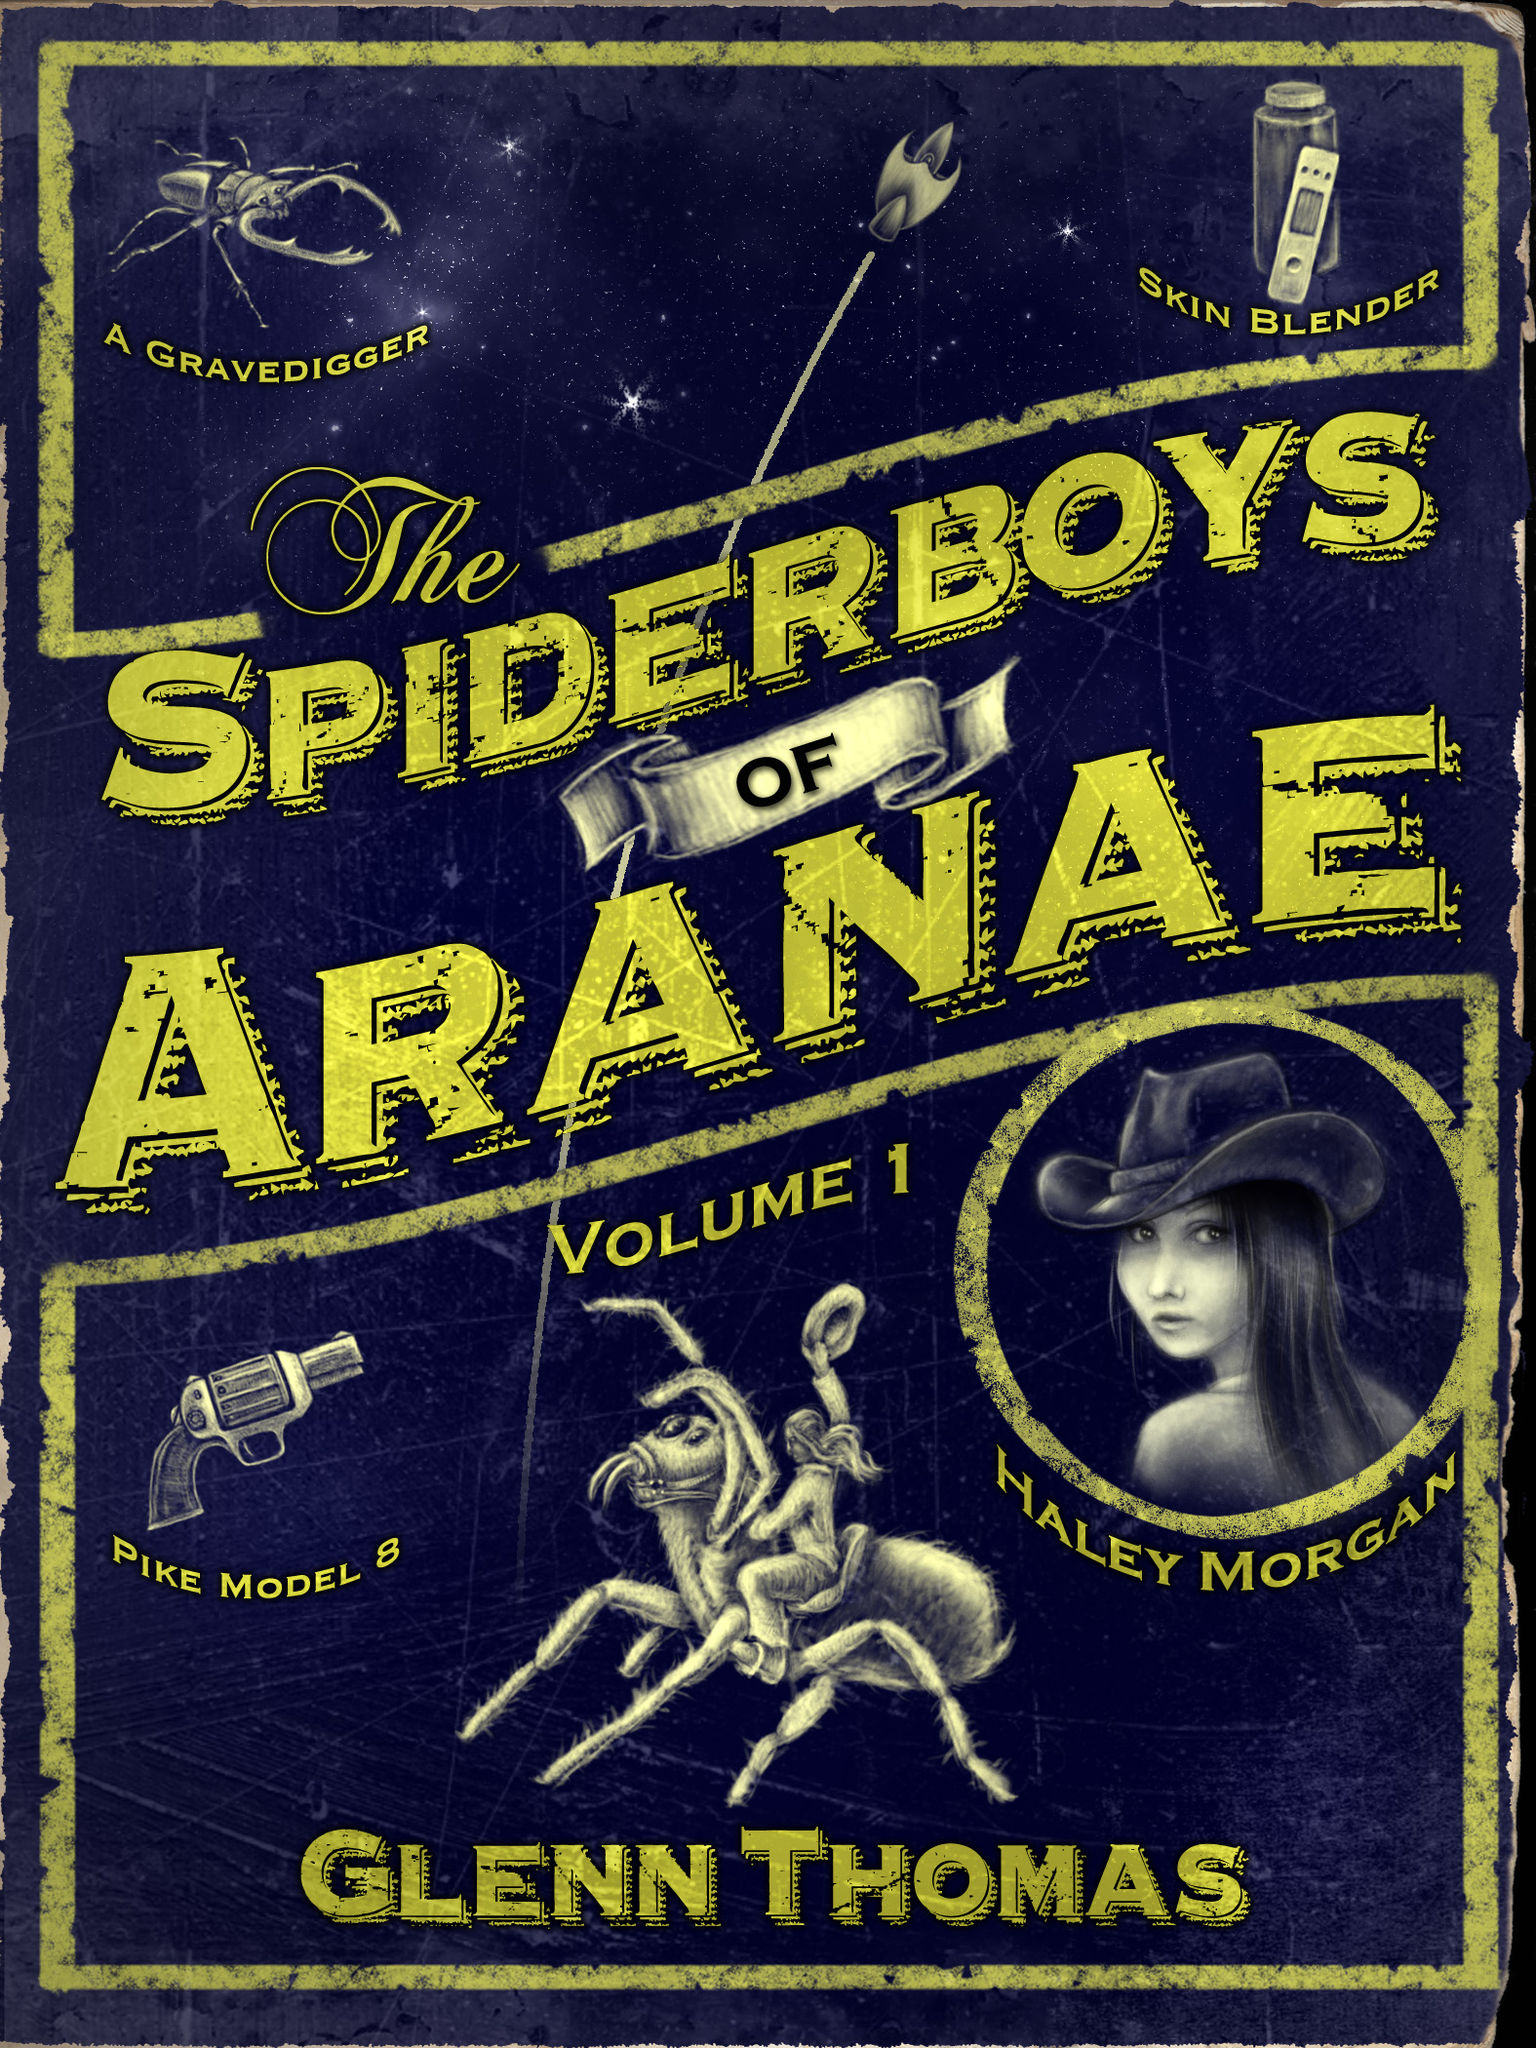 The Spiderboys of Aranae, Vol. 1